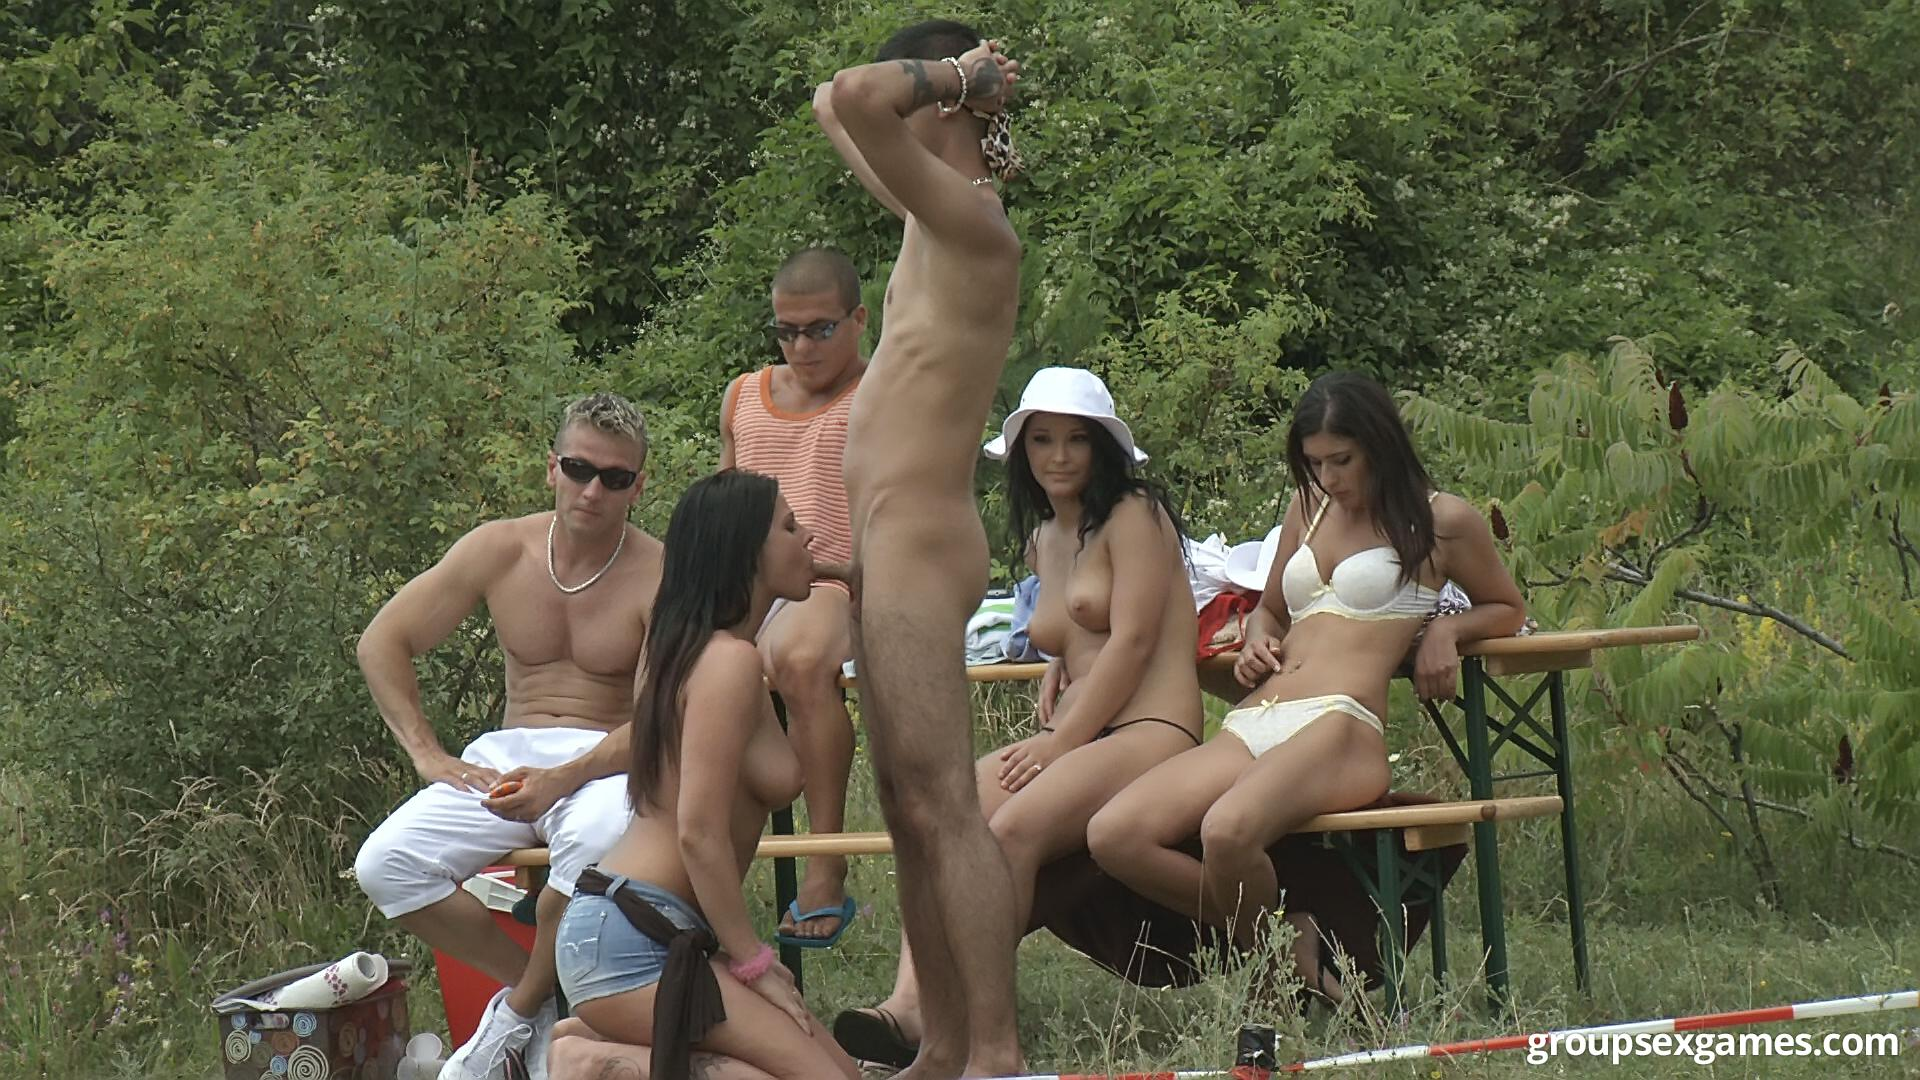 Long outdoor orgy videos